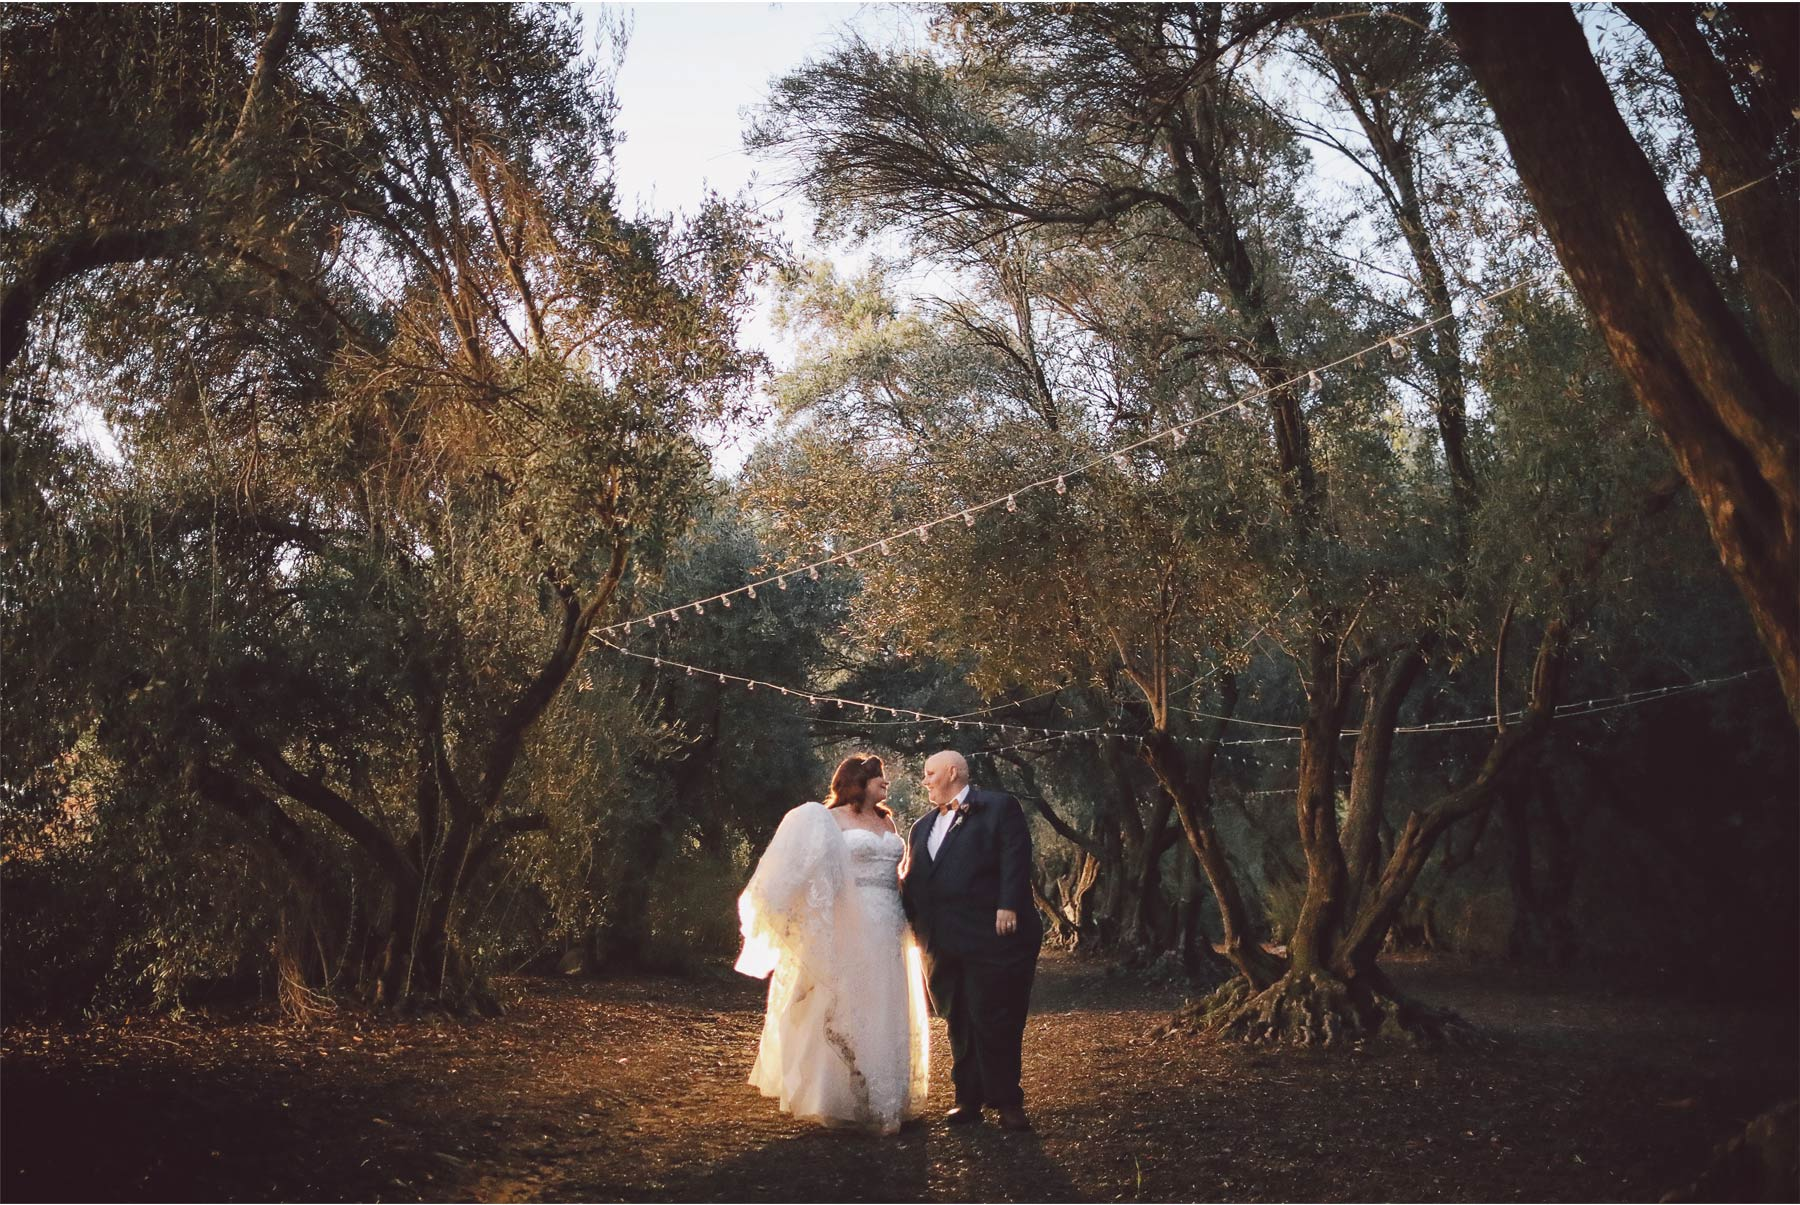 18-Los-Angeles-California-Wedding-Photographer-by-Vick-Photography-Highland-Springs-Ranch-LGBT-Night-Photography-Trees-Rebecca-and-Terri.jpg